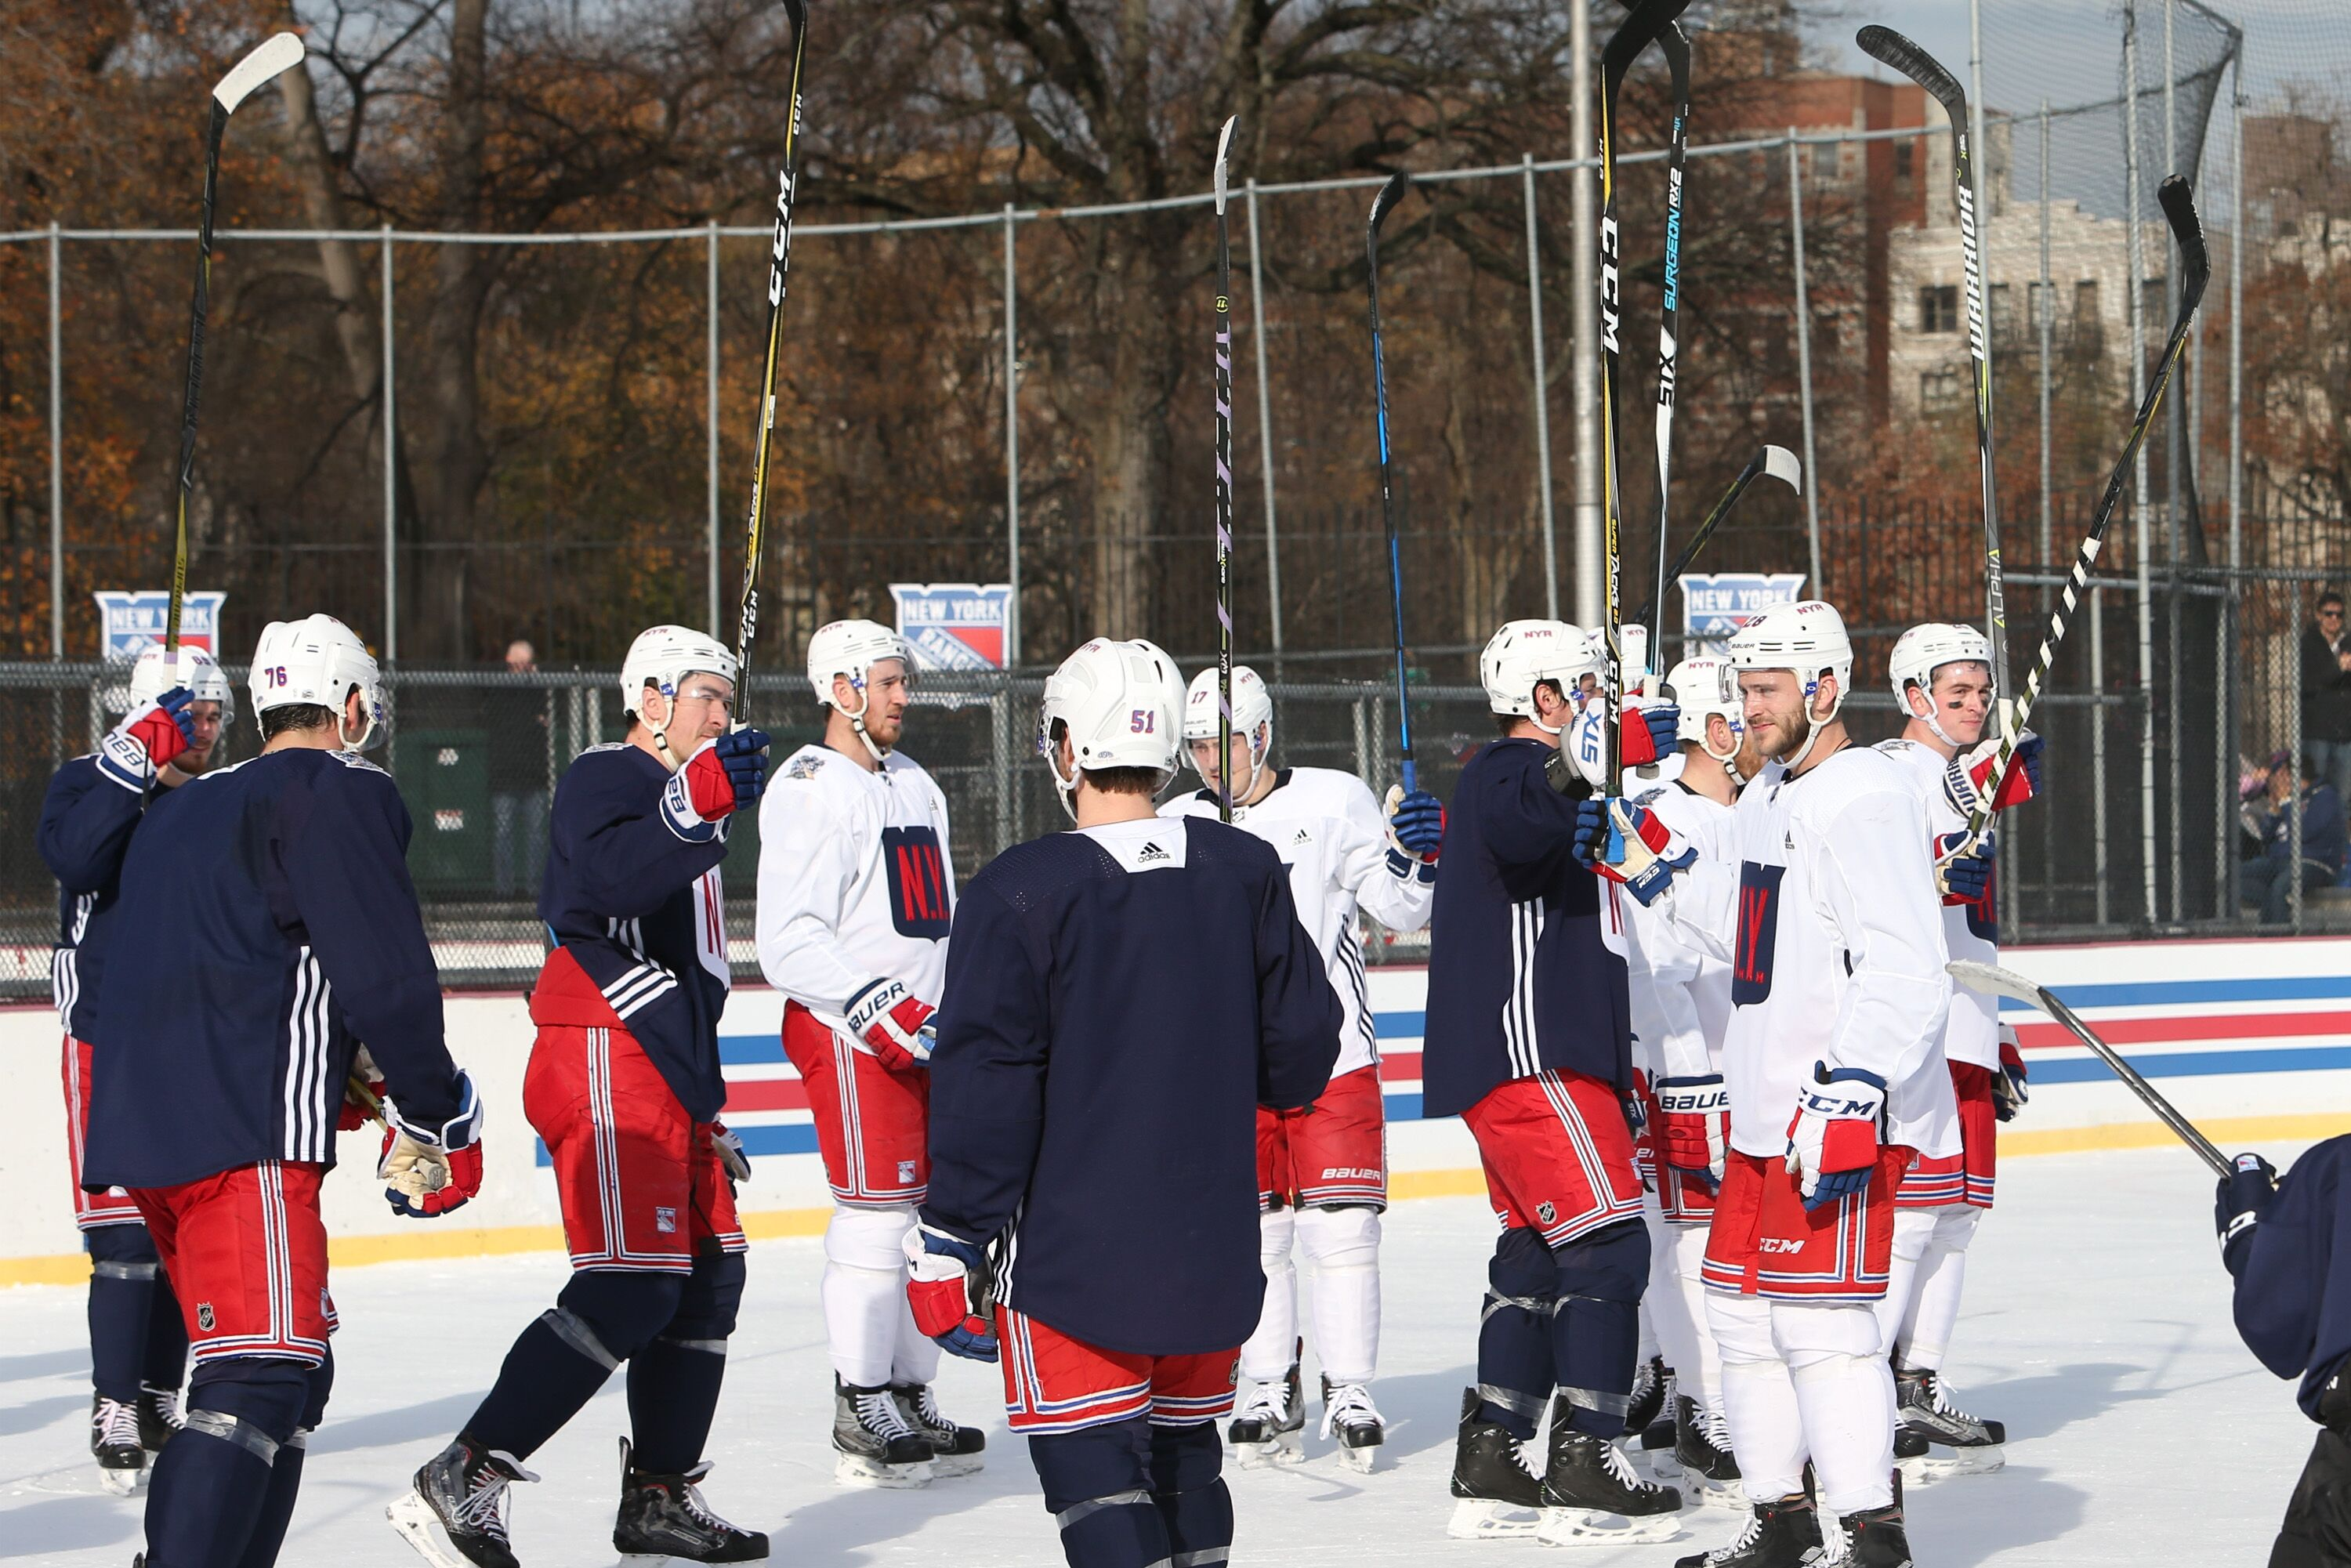 884547422-new-york-rangers-open-practice-and-youth-clinic-in-central-park.jpg